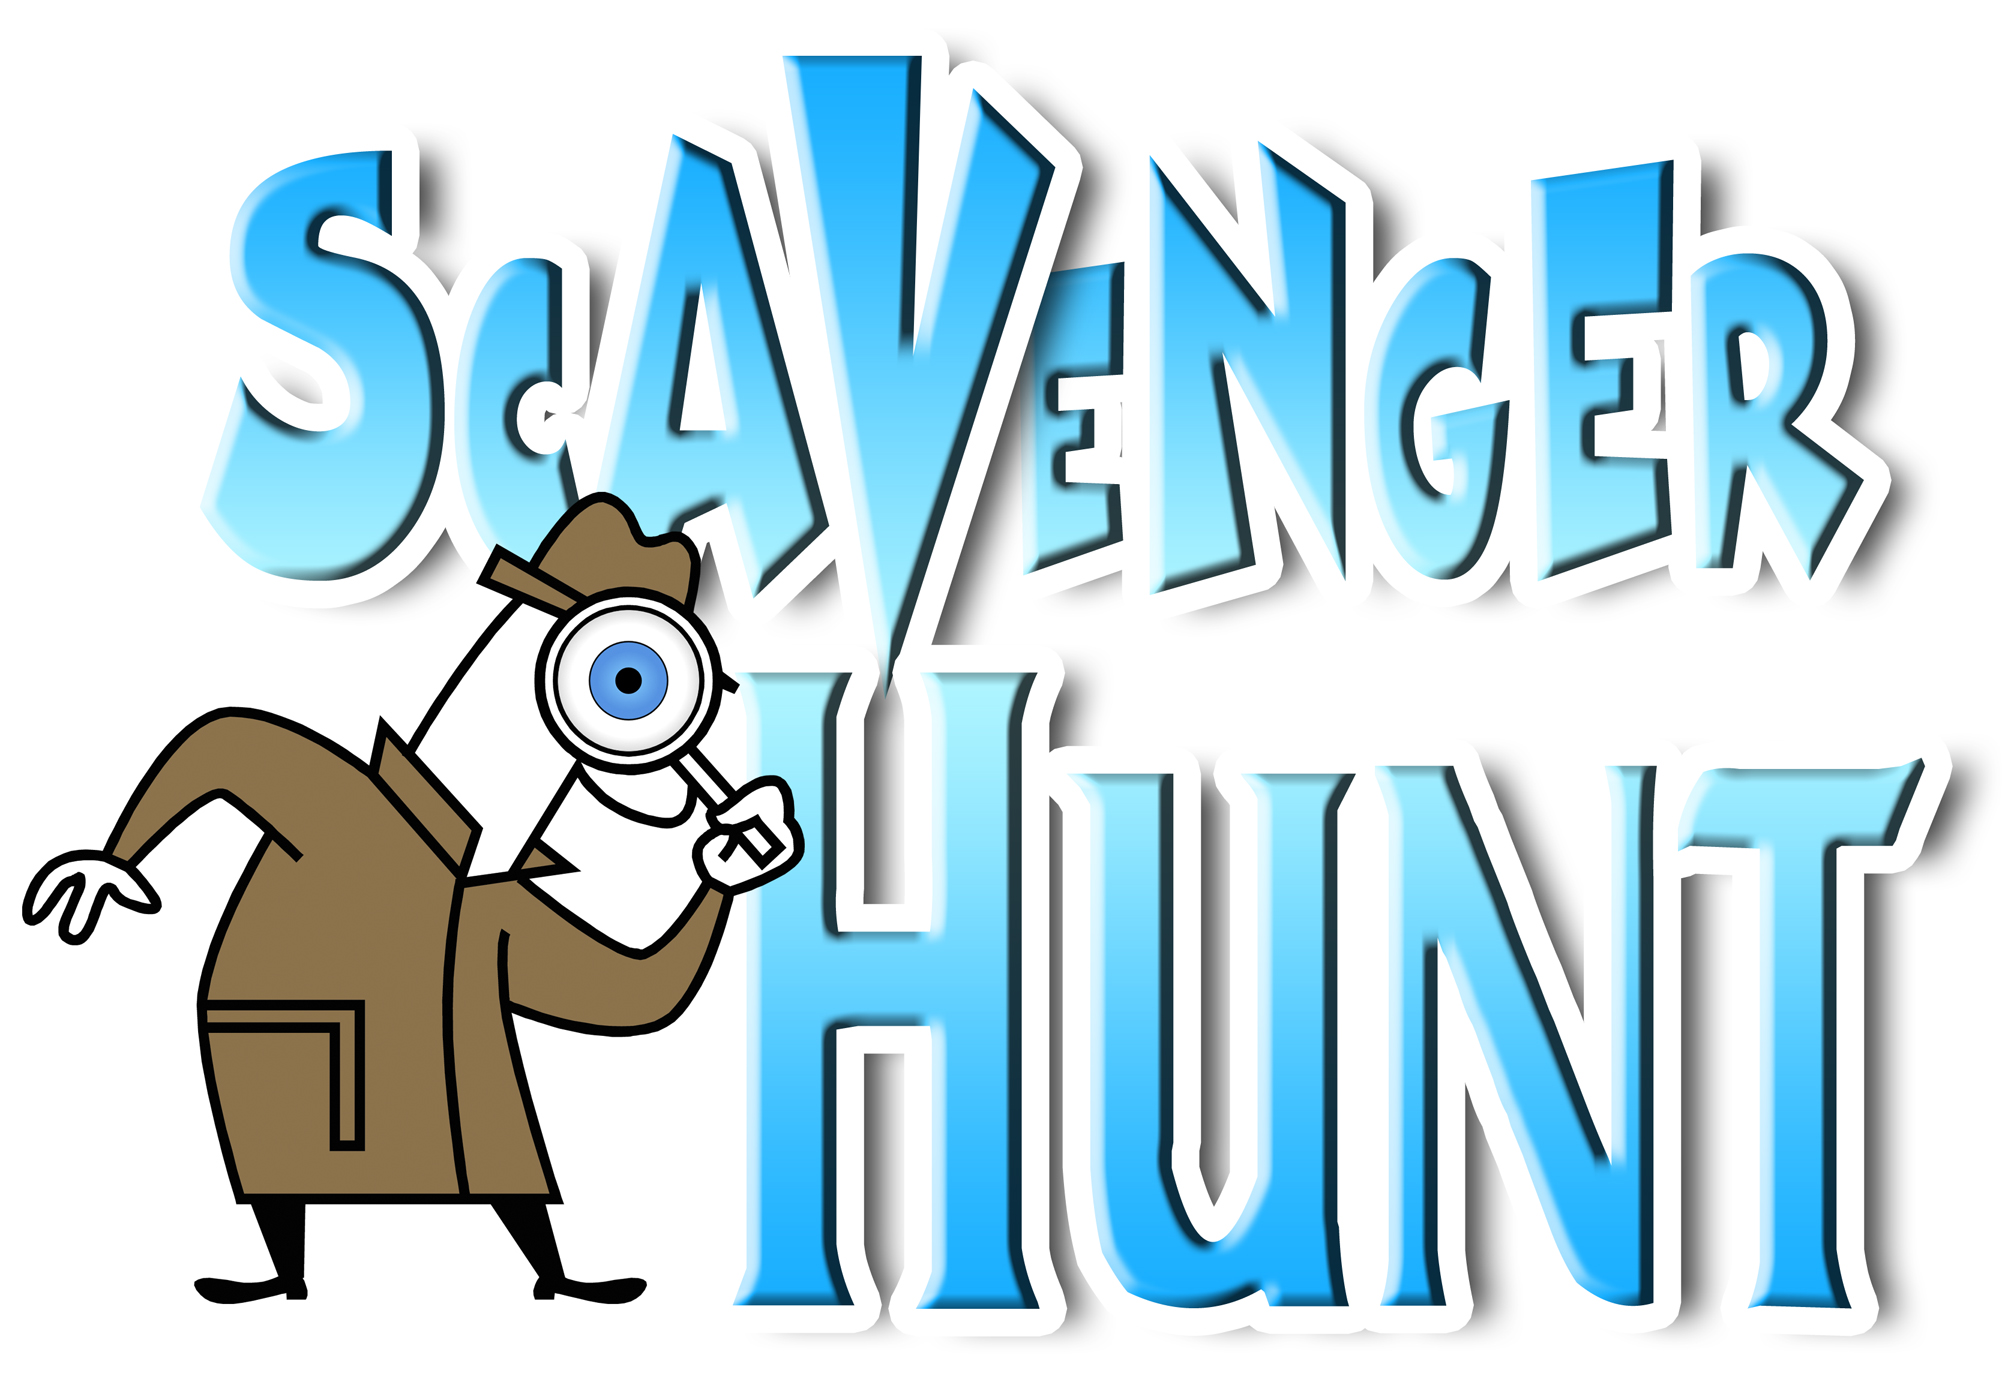 free hunting clipart at getdrawings com free for personal use free rh getdrawings com hunting rifle clipart free fox hunting clipart free